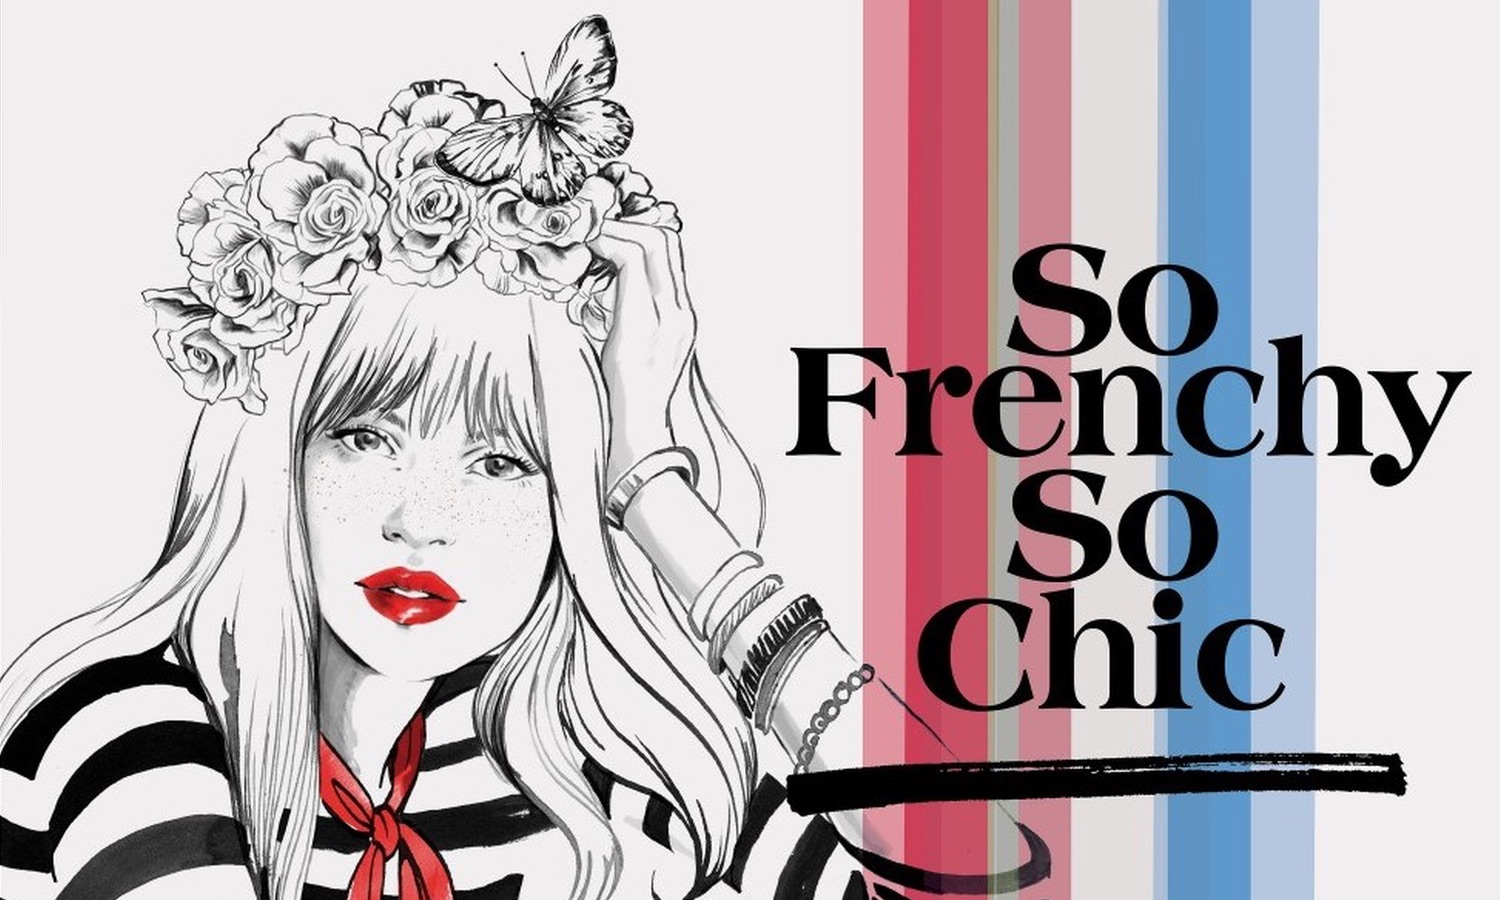 Album So Frenchy So Chic